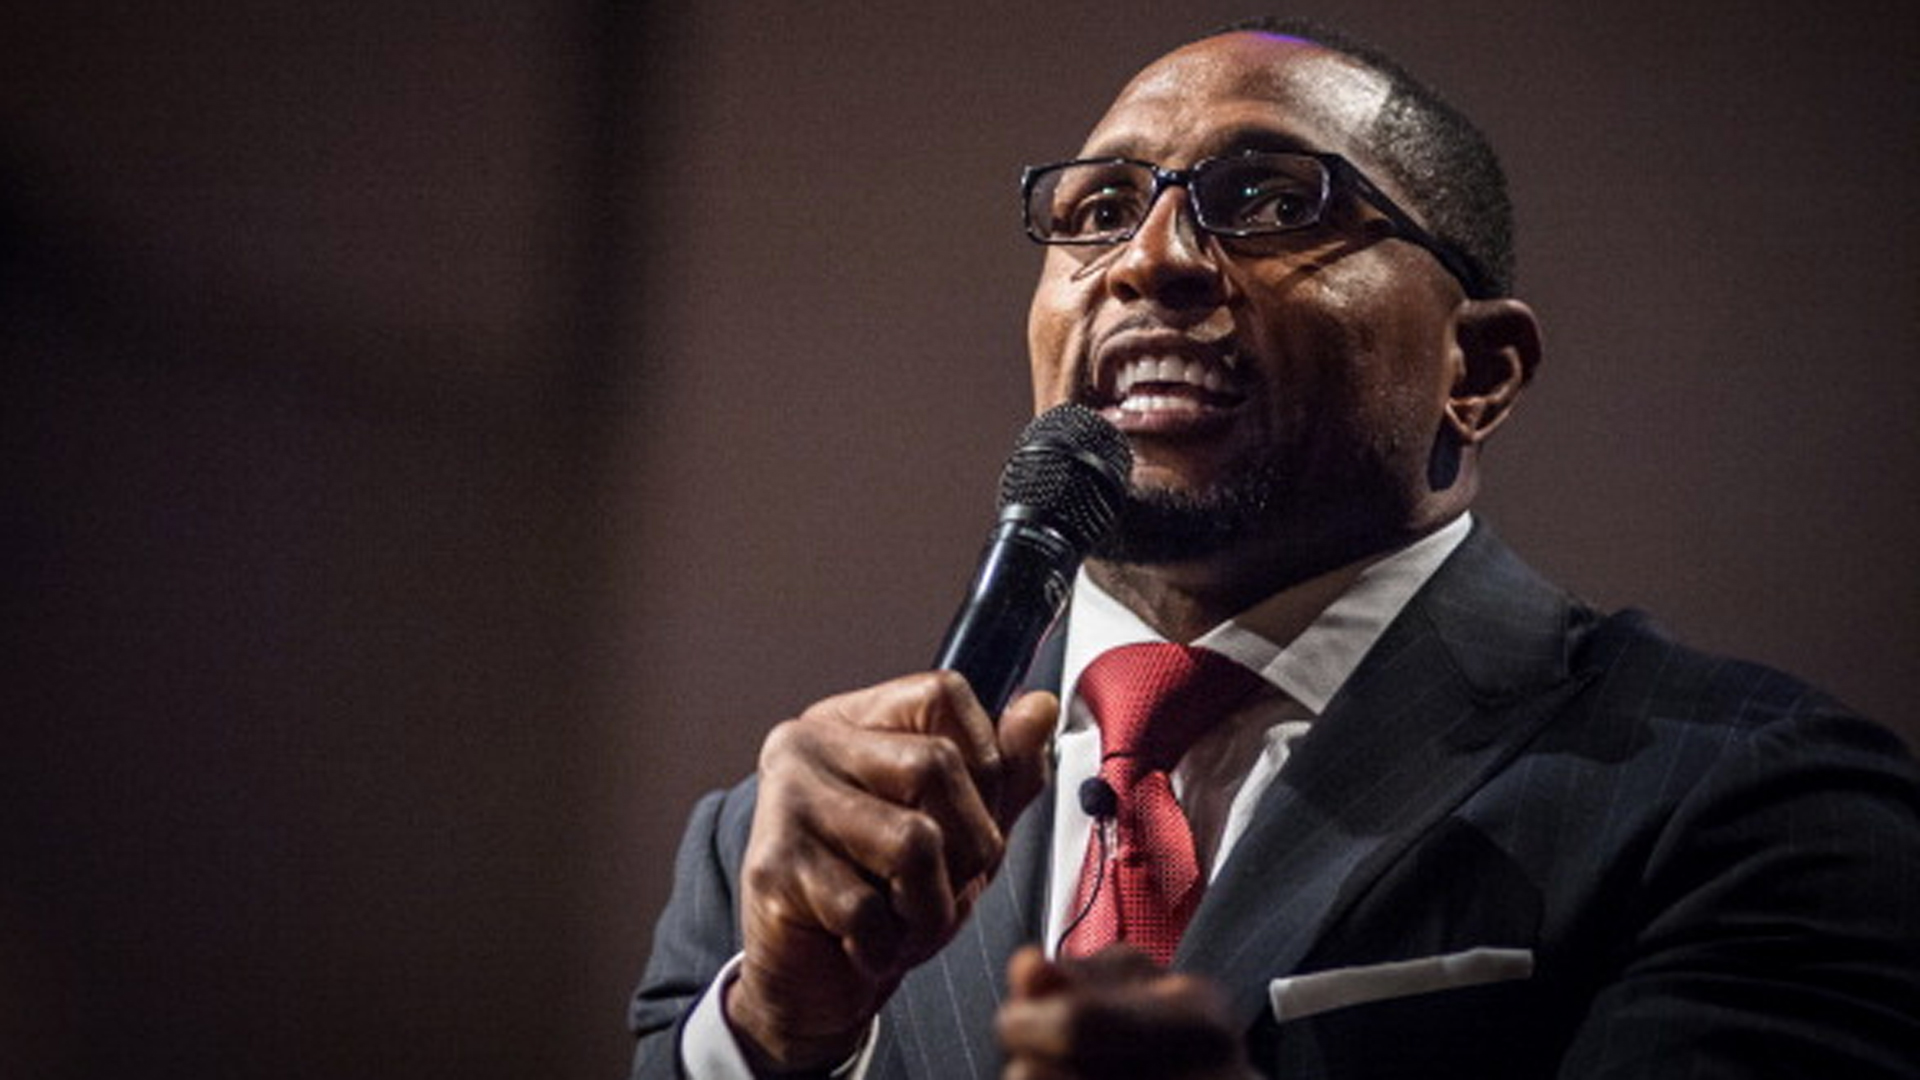 Ray Lewis delivers passionate message calling for peace in Baltimore